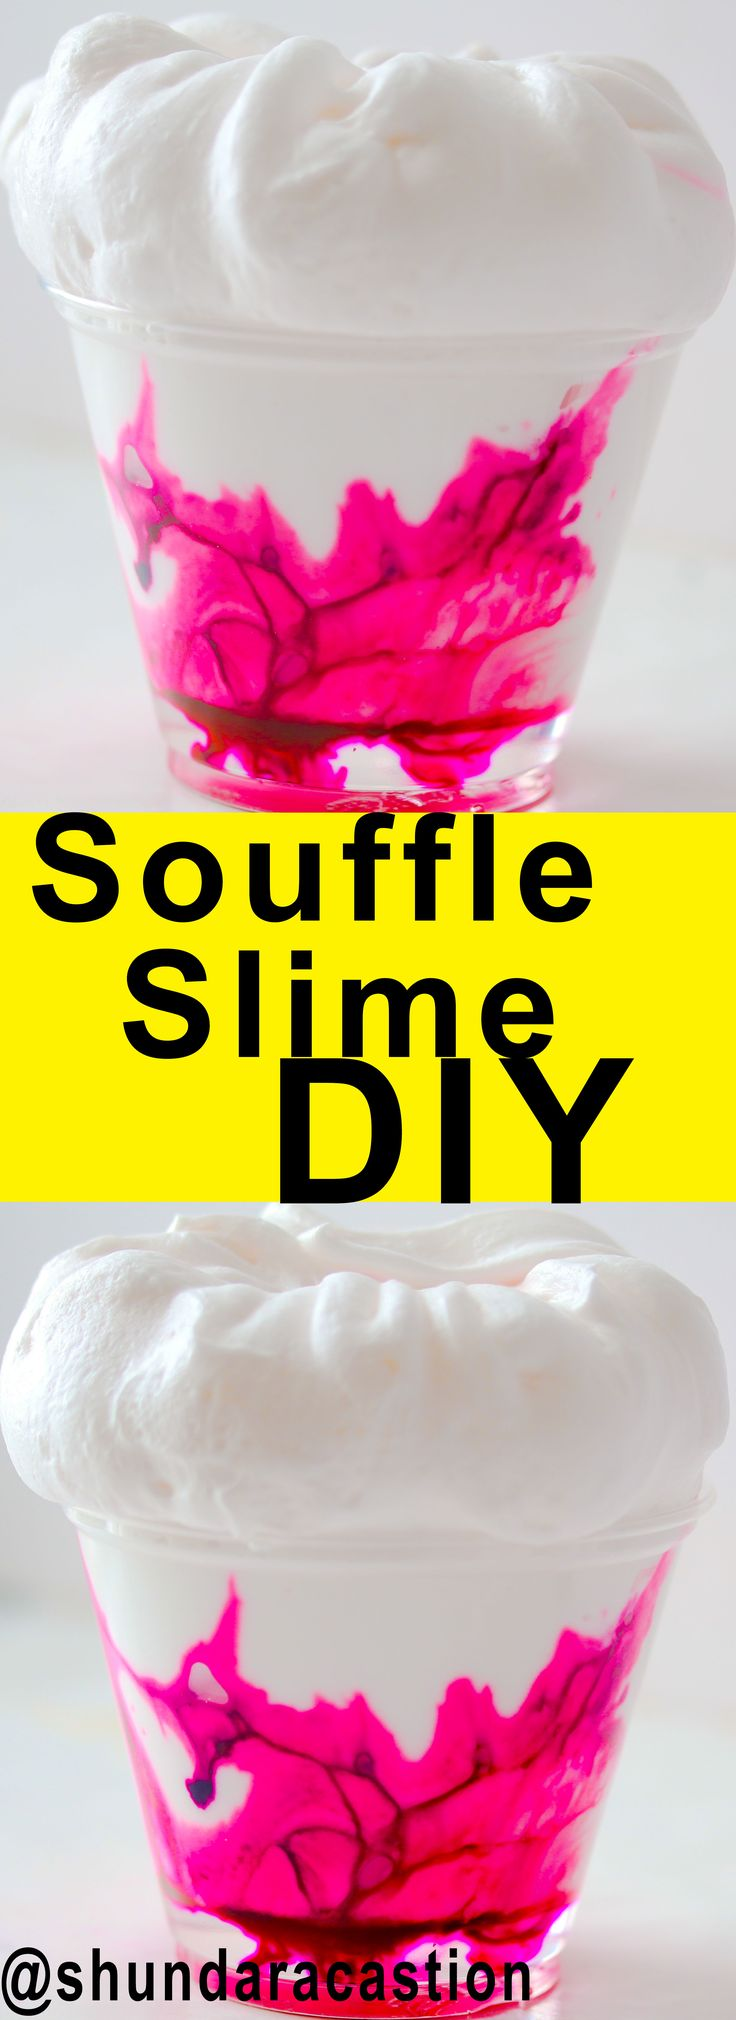 The new viral slime is alive! Make this easy DIY Slime that only requires a few simple ingrediants... Souffle Slime is the best #slime